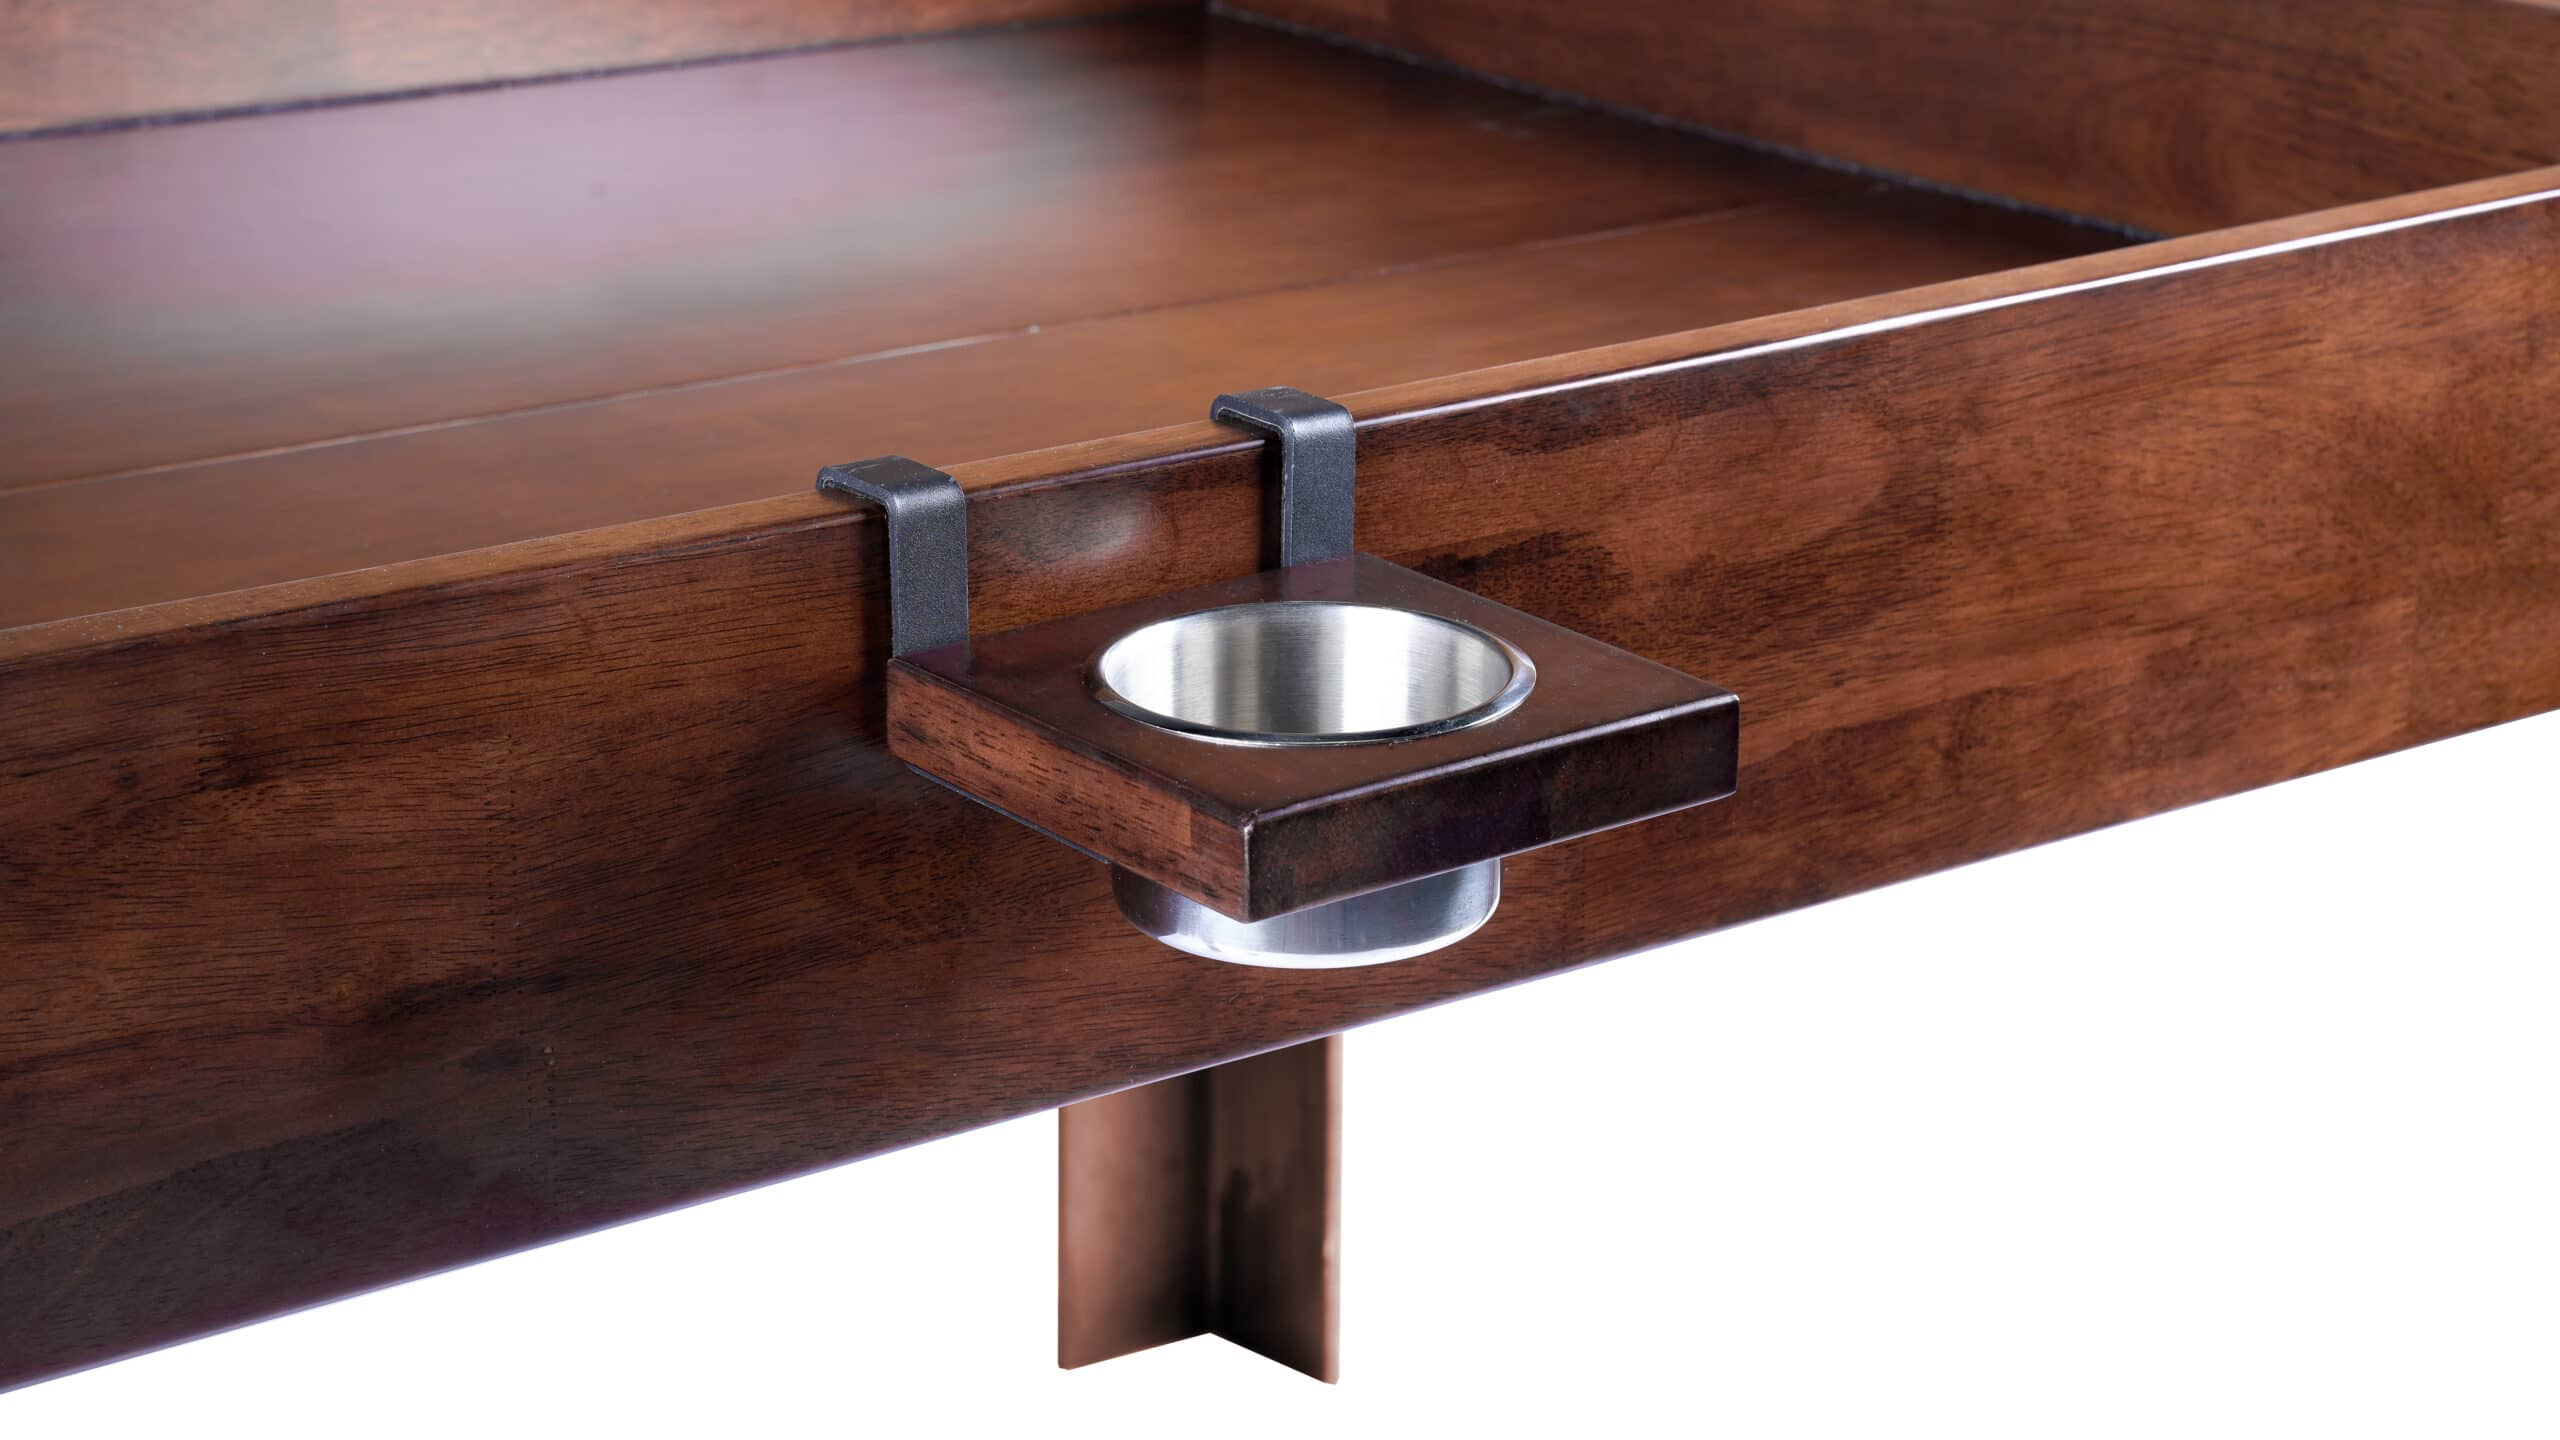 The nilo wine glass holder shown mounted on the Nilo master table in dark walnut stain